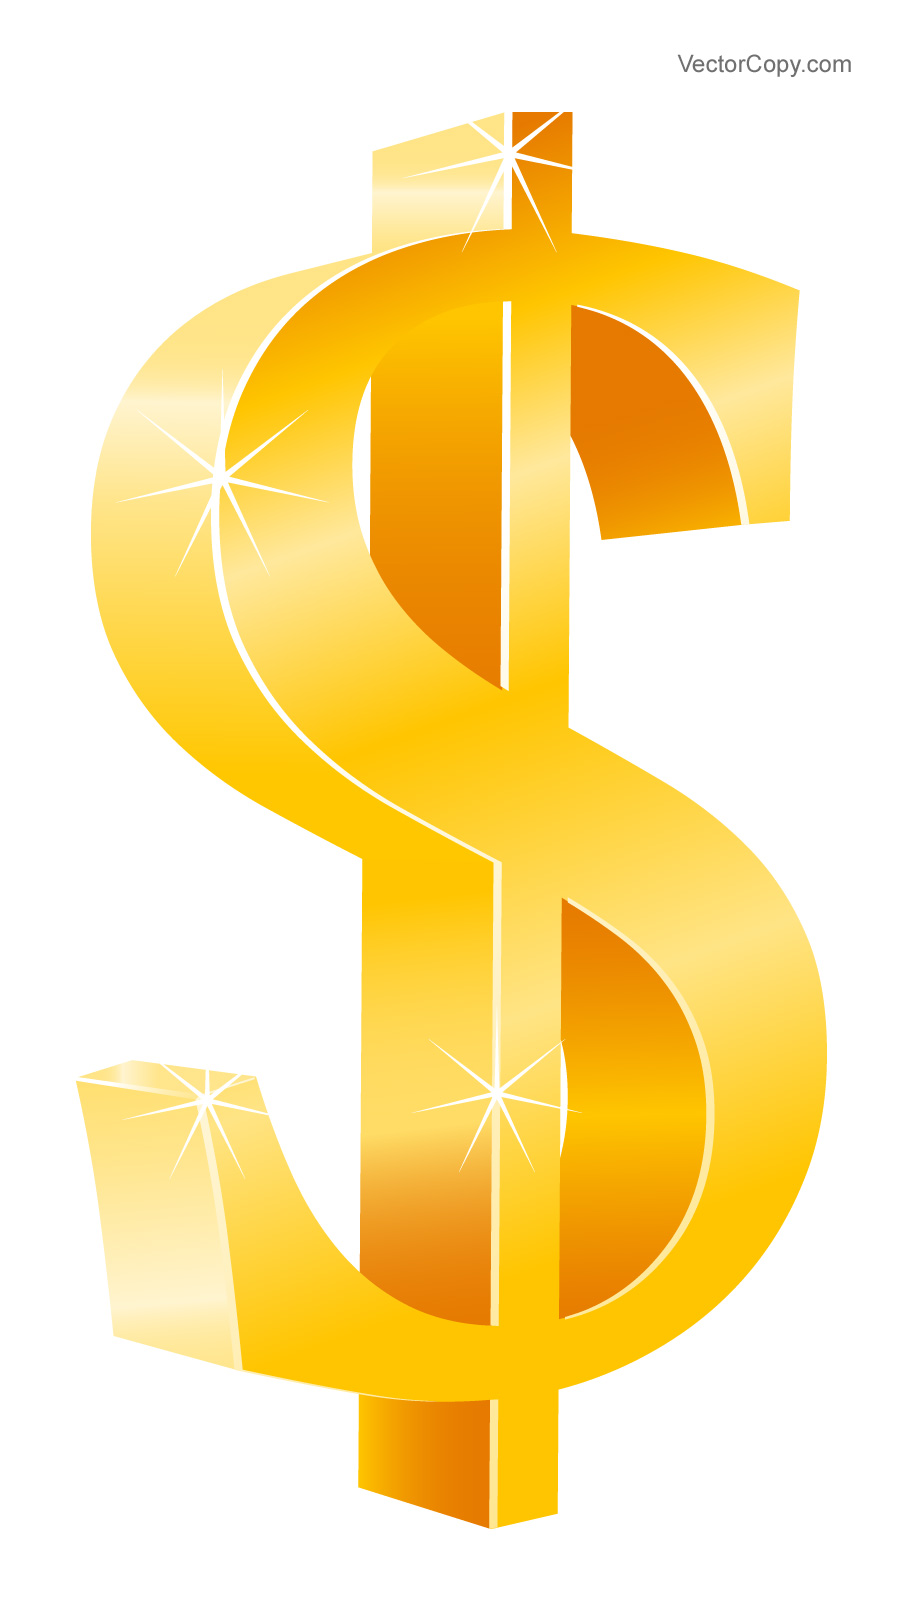 14 Free Vector Dollar Sign Images - Dollar Sign Vector ...